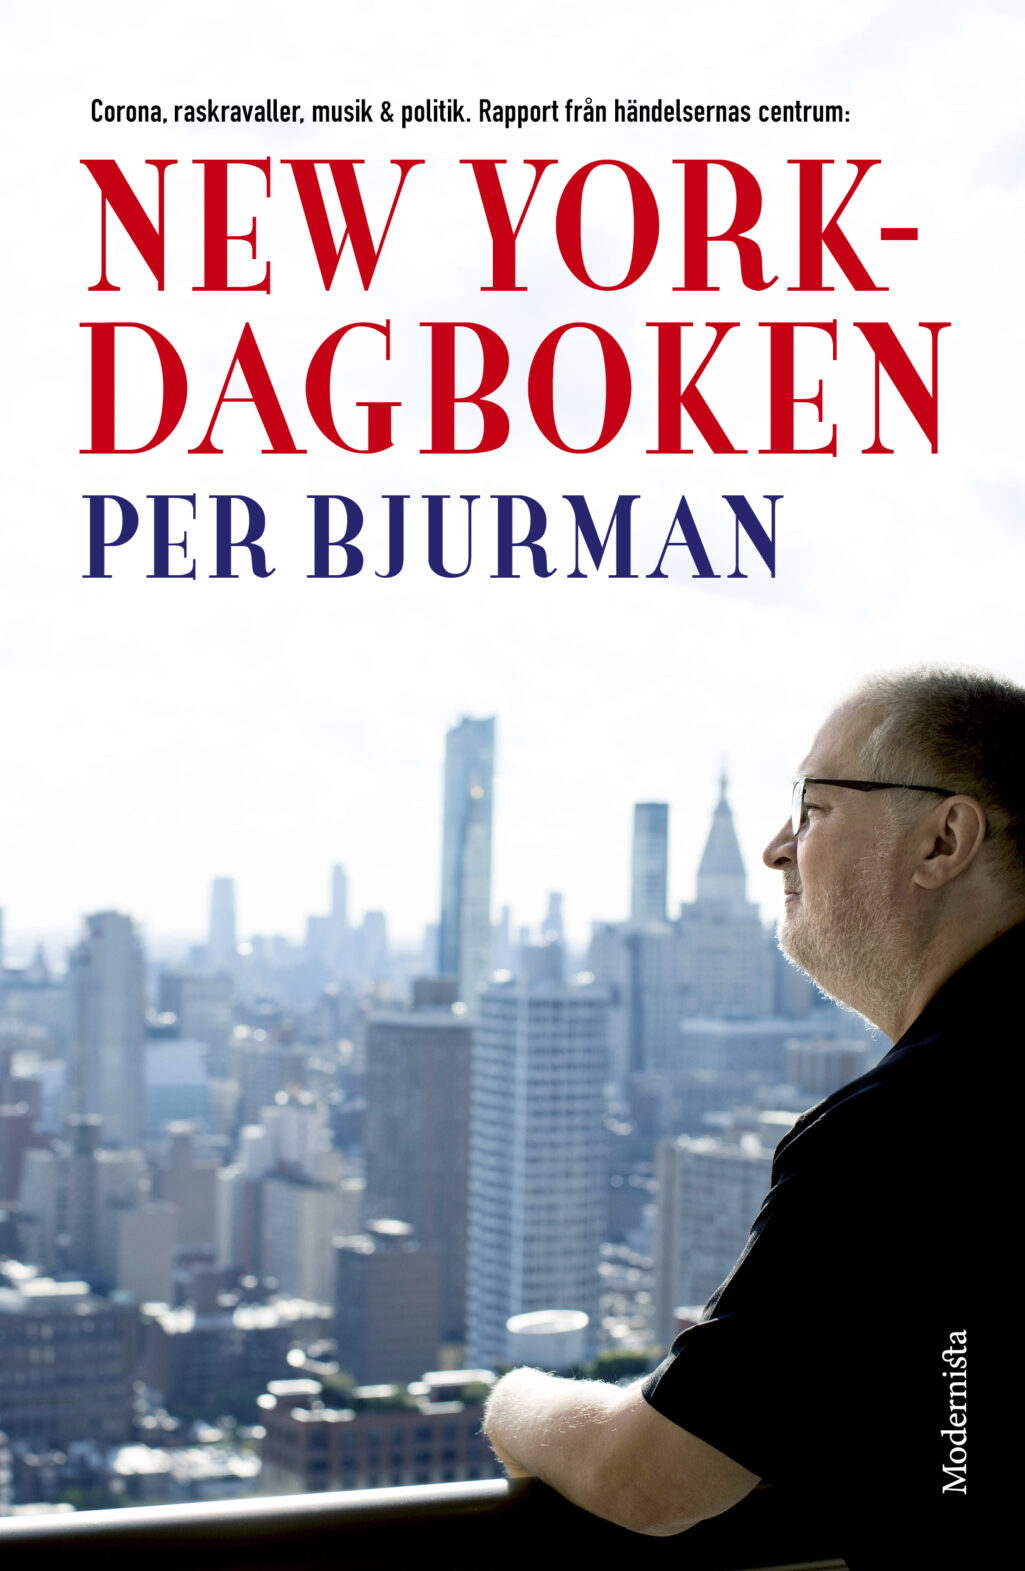 bjurman_new_york-dagboken_omslag_mb